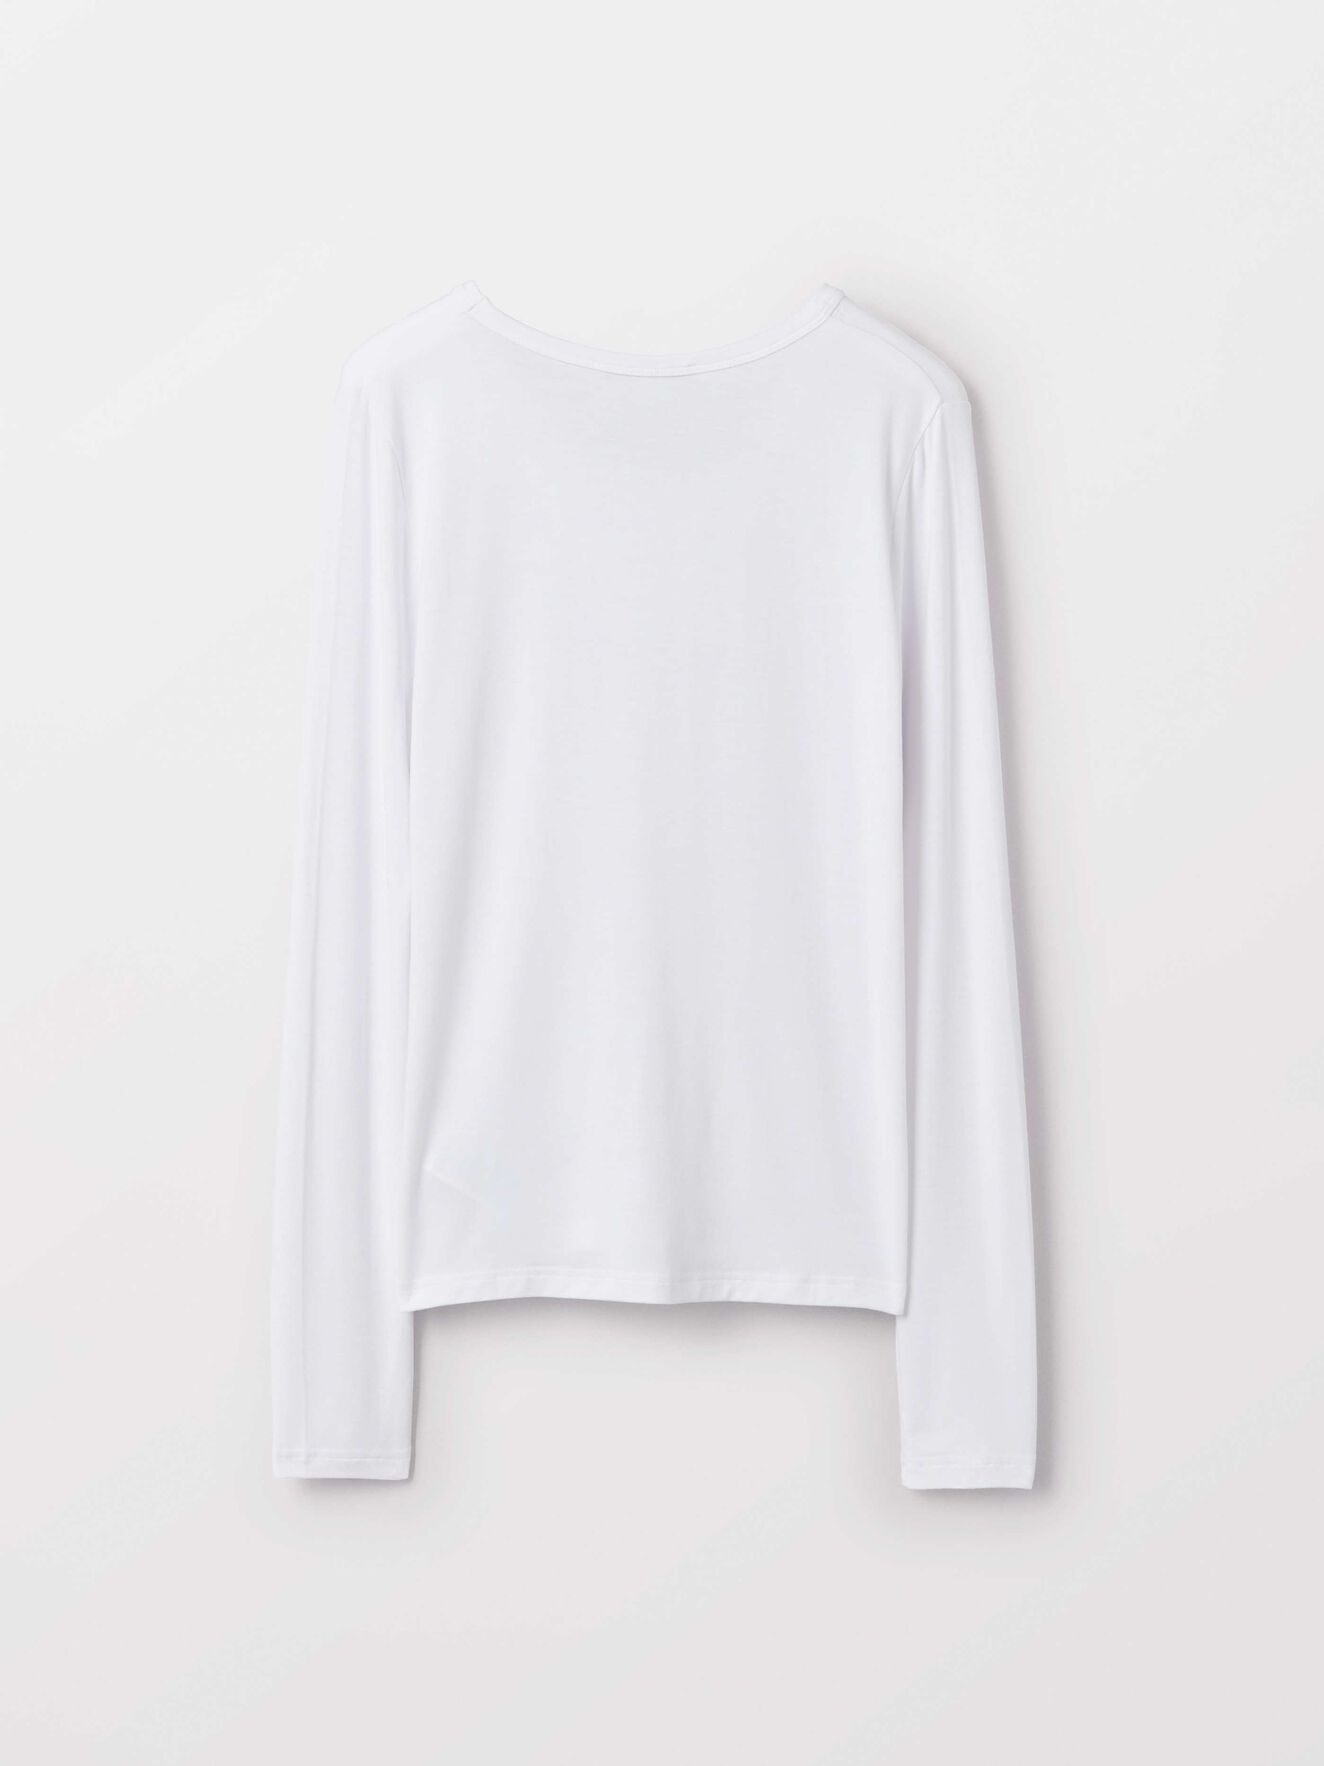 Hapalan T-Shirt in Pure white from Tiger of Sweden